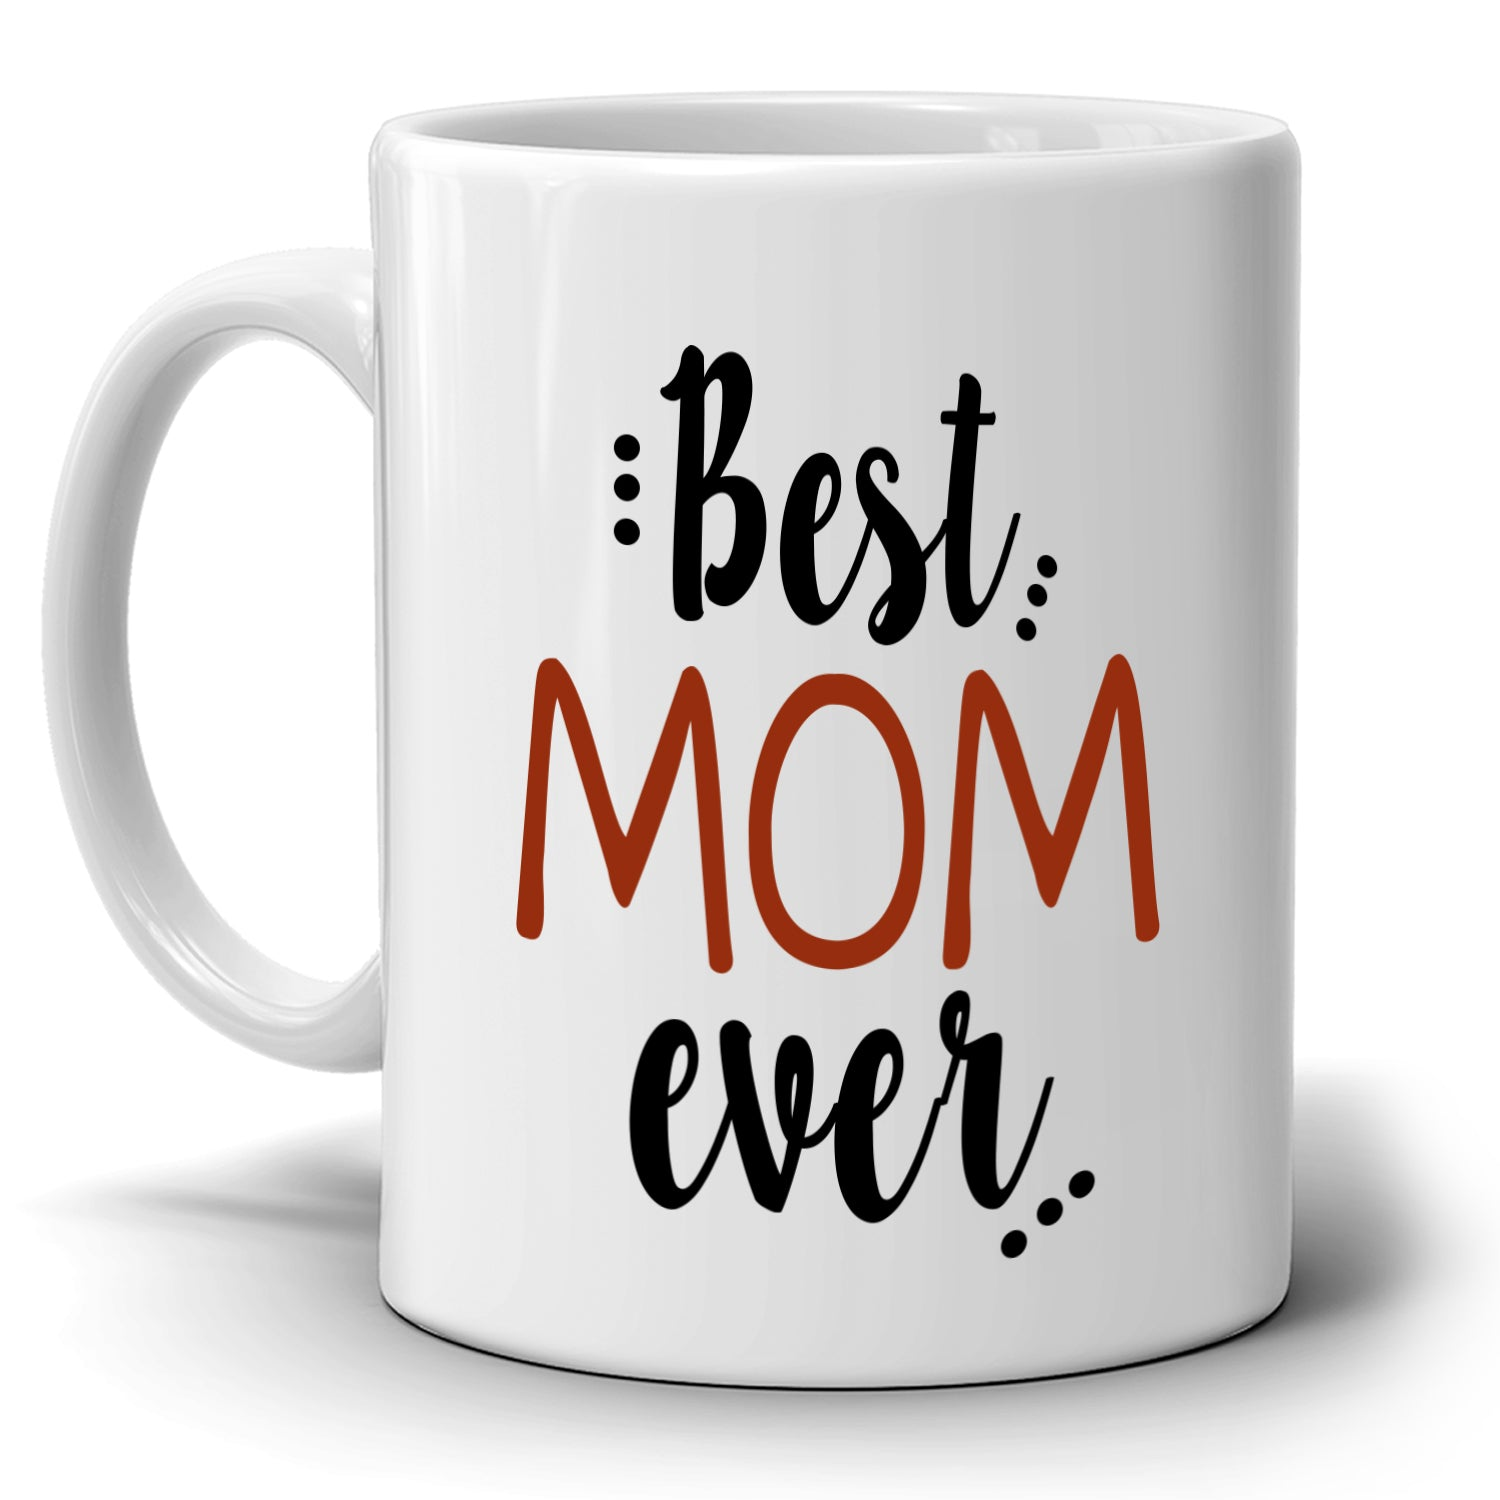 Unique Gifts For Mom Coffee Mug Perfect Present For